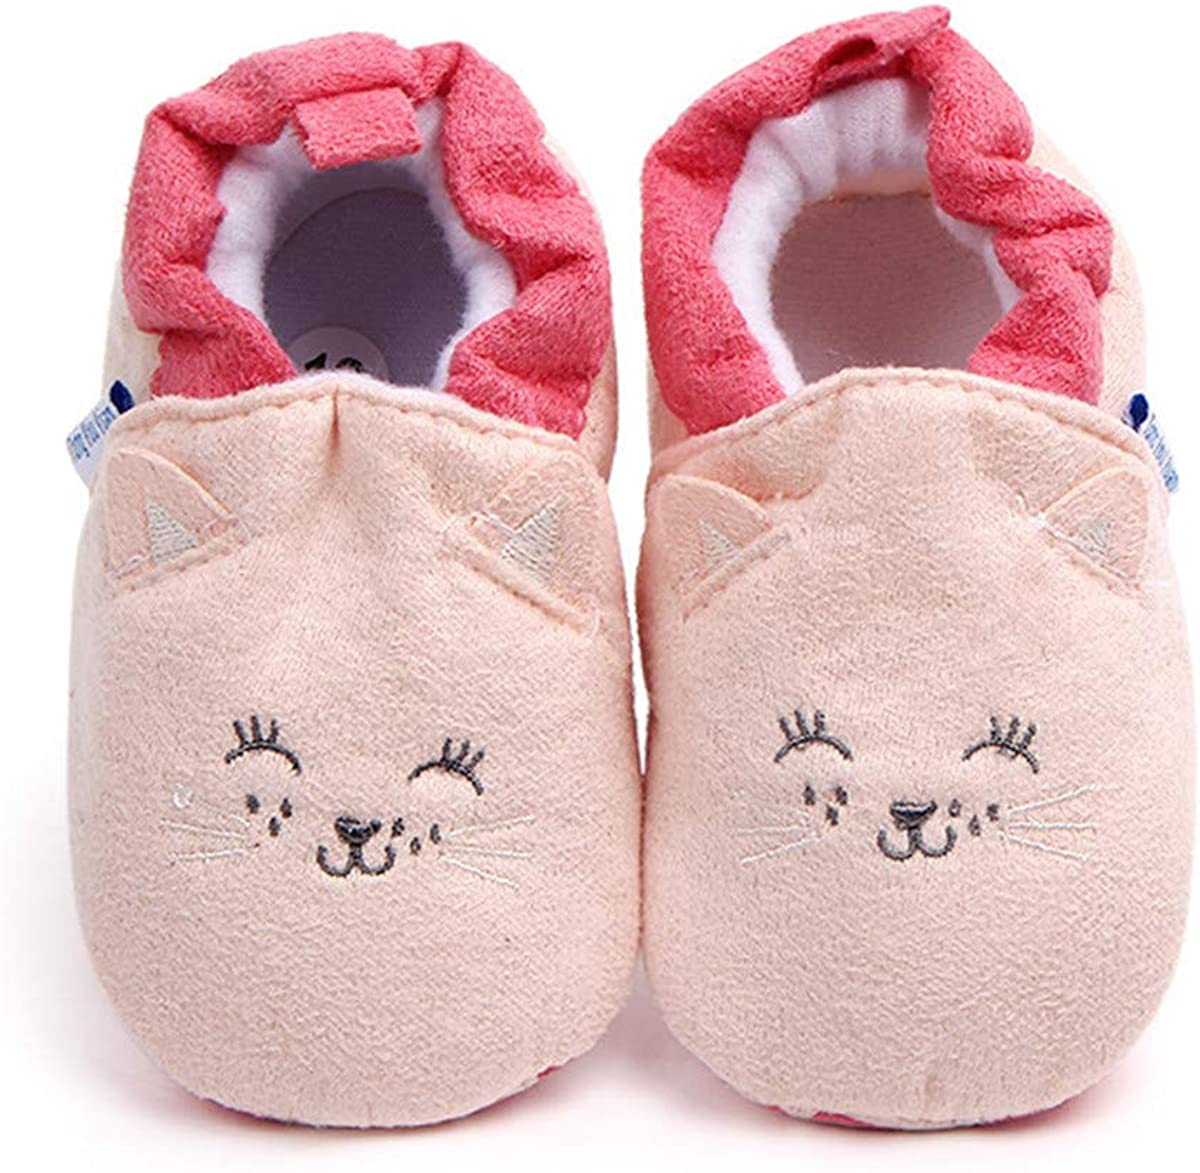 Baby Boys Girls Shoes Non Slip Stay On House Slipper Newborn Socks Infant Toddler First Walker Crib Shoes